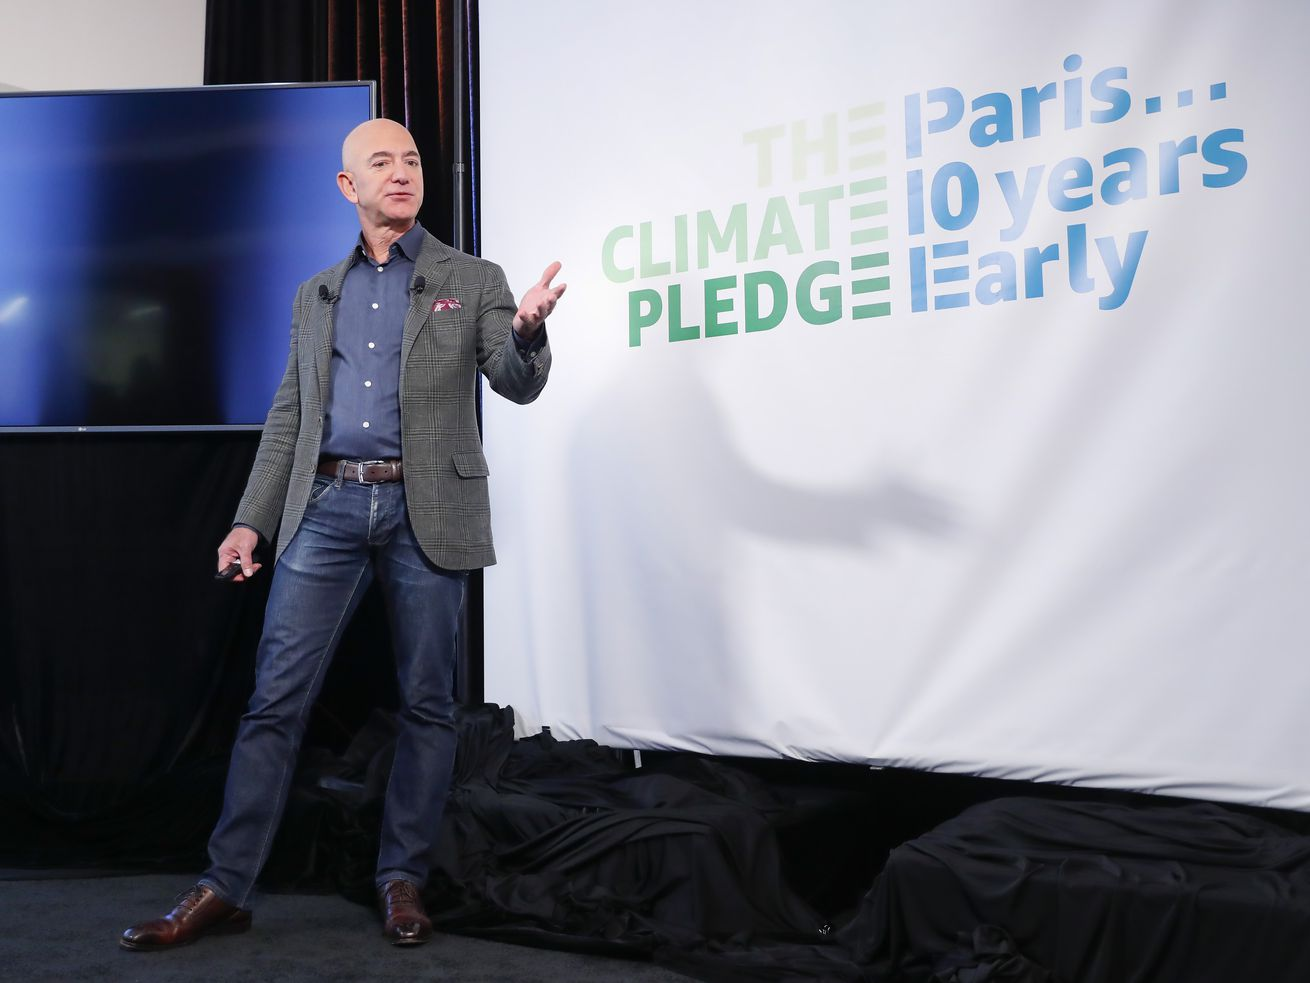 Amazon commits to 'Climate Pledge' and announces plan to fight climate change